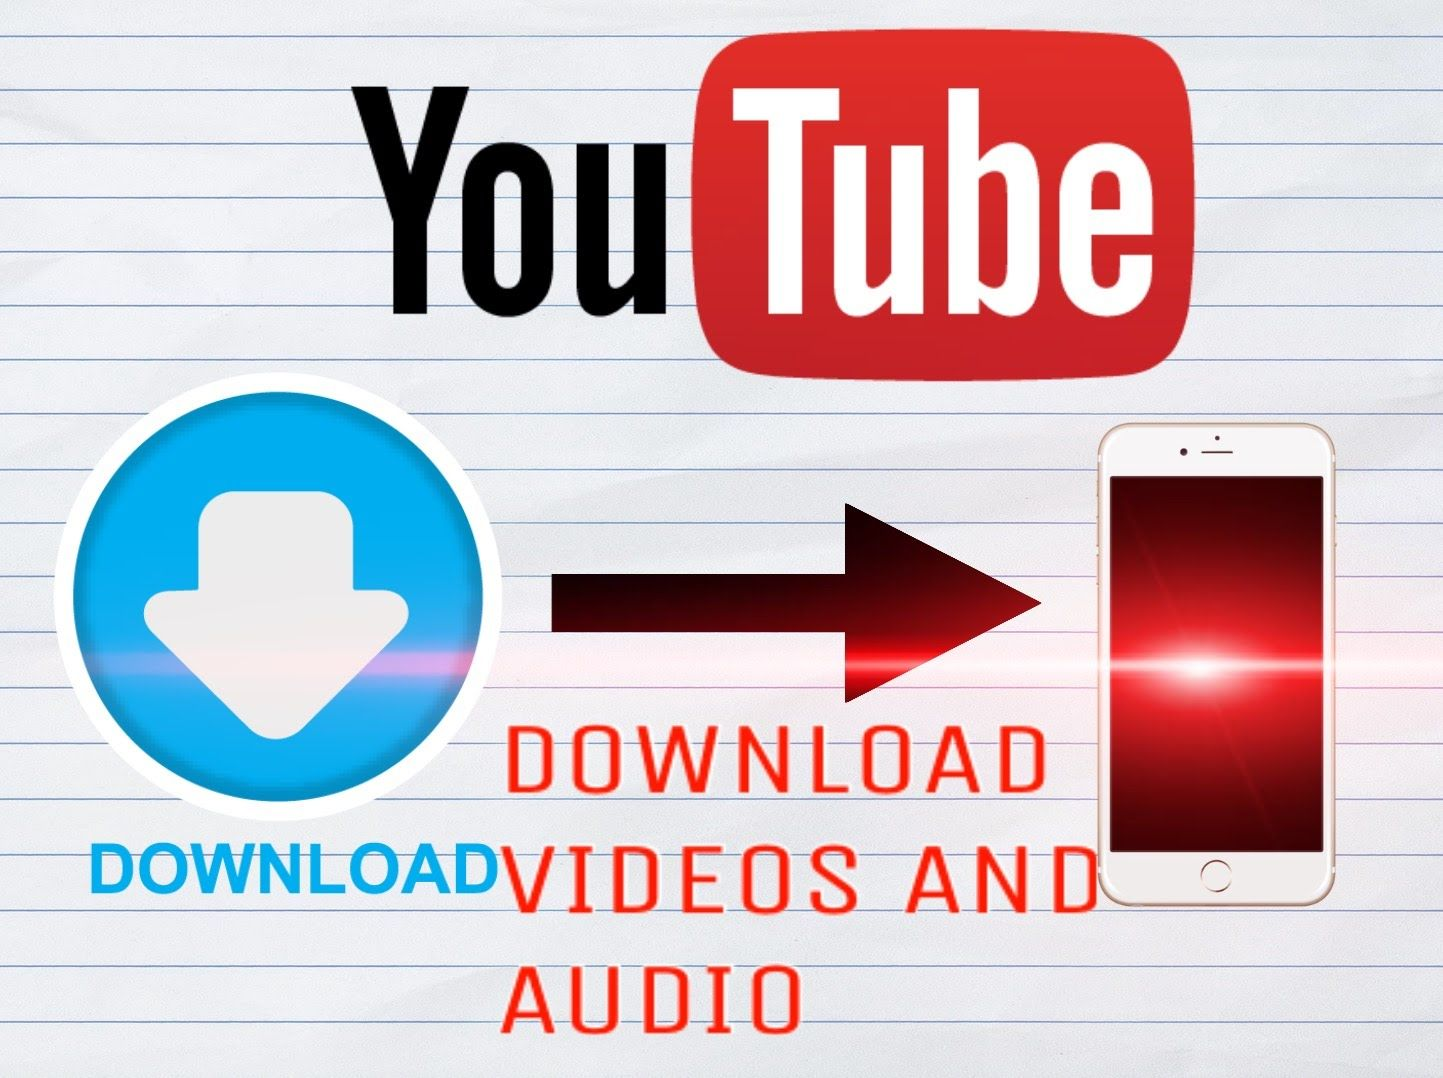 𝗛𝗗 𝗬𝗼𝘂𝗧𝘂𝗯𝗲 𝗗𝗼𝘄𝗻𝗹𝗼𝗮𝗱𝗲𝗿 Supports Hd Format It Means You Can Download Hd Videos In Best Picture And Sound Qualit Youtube City Games Free Games